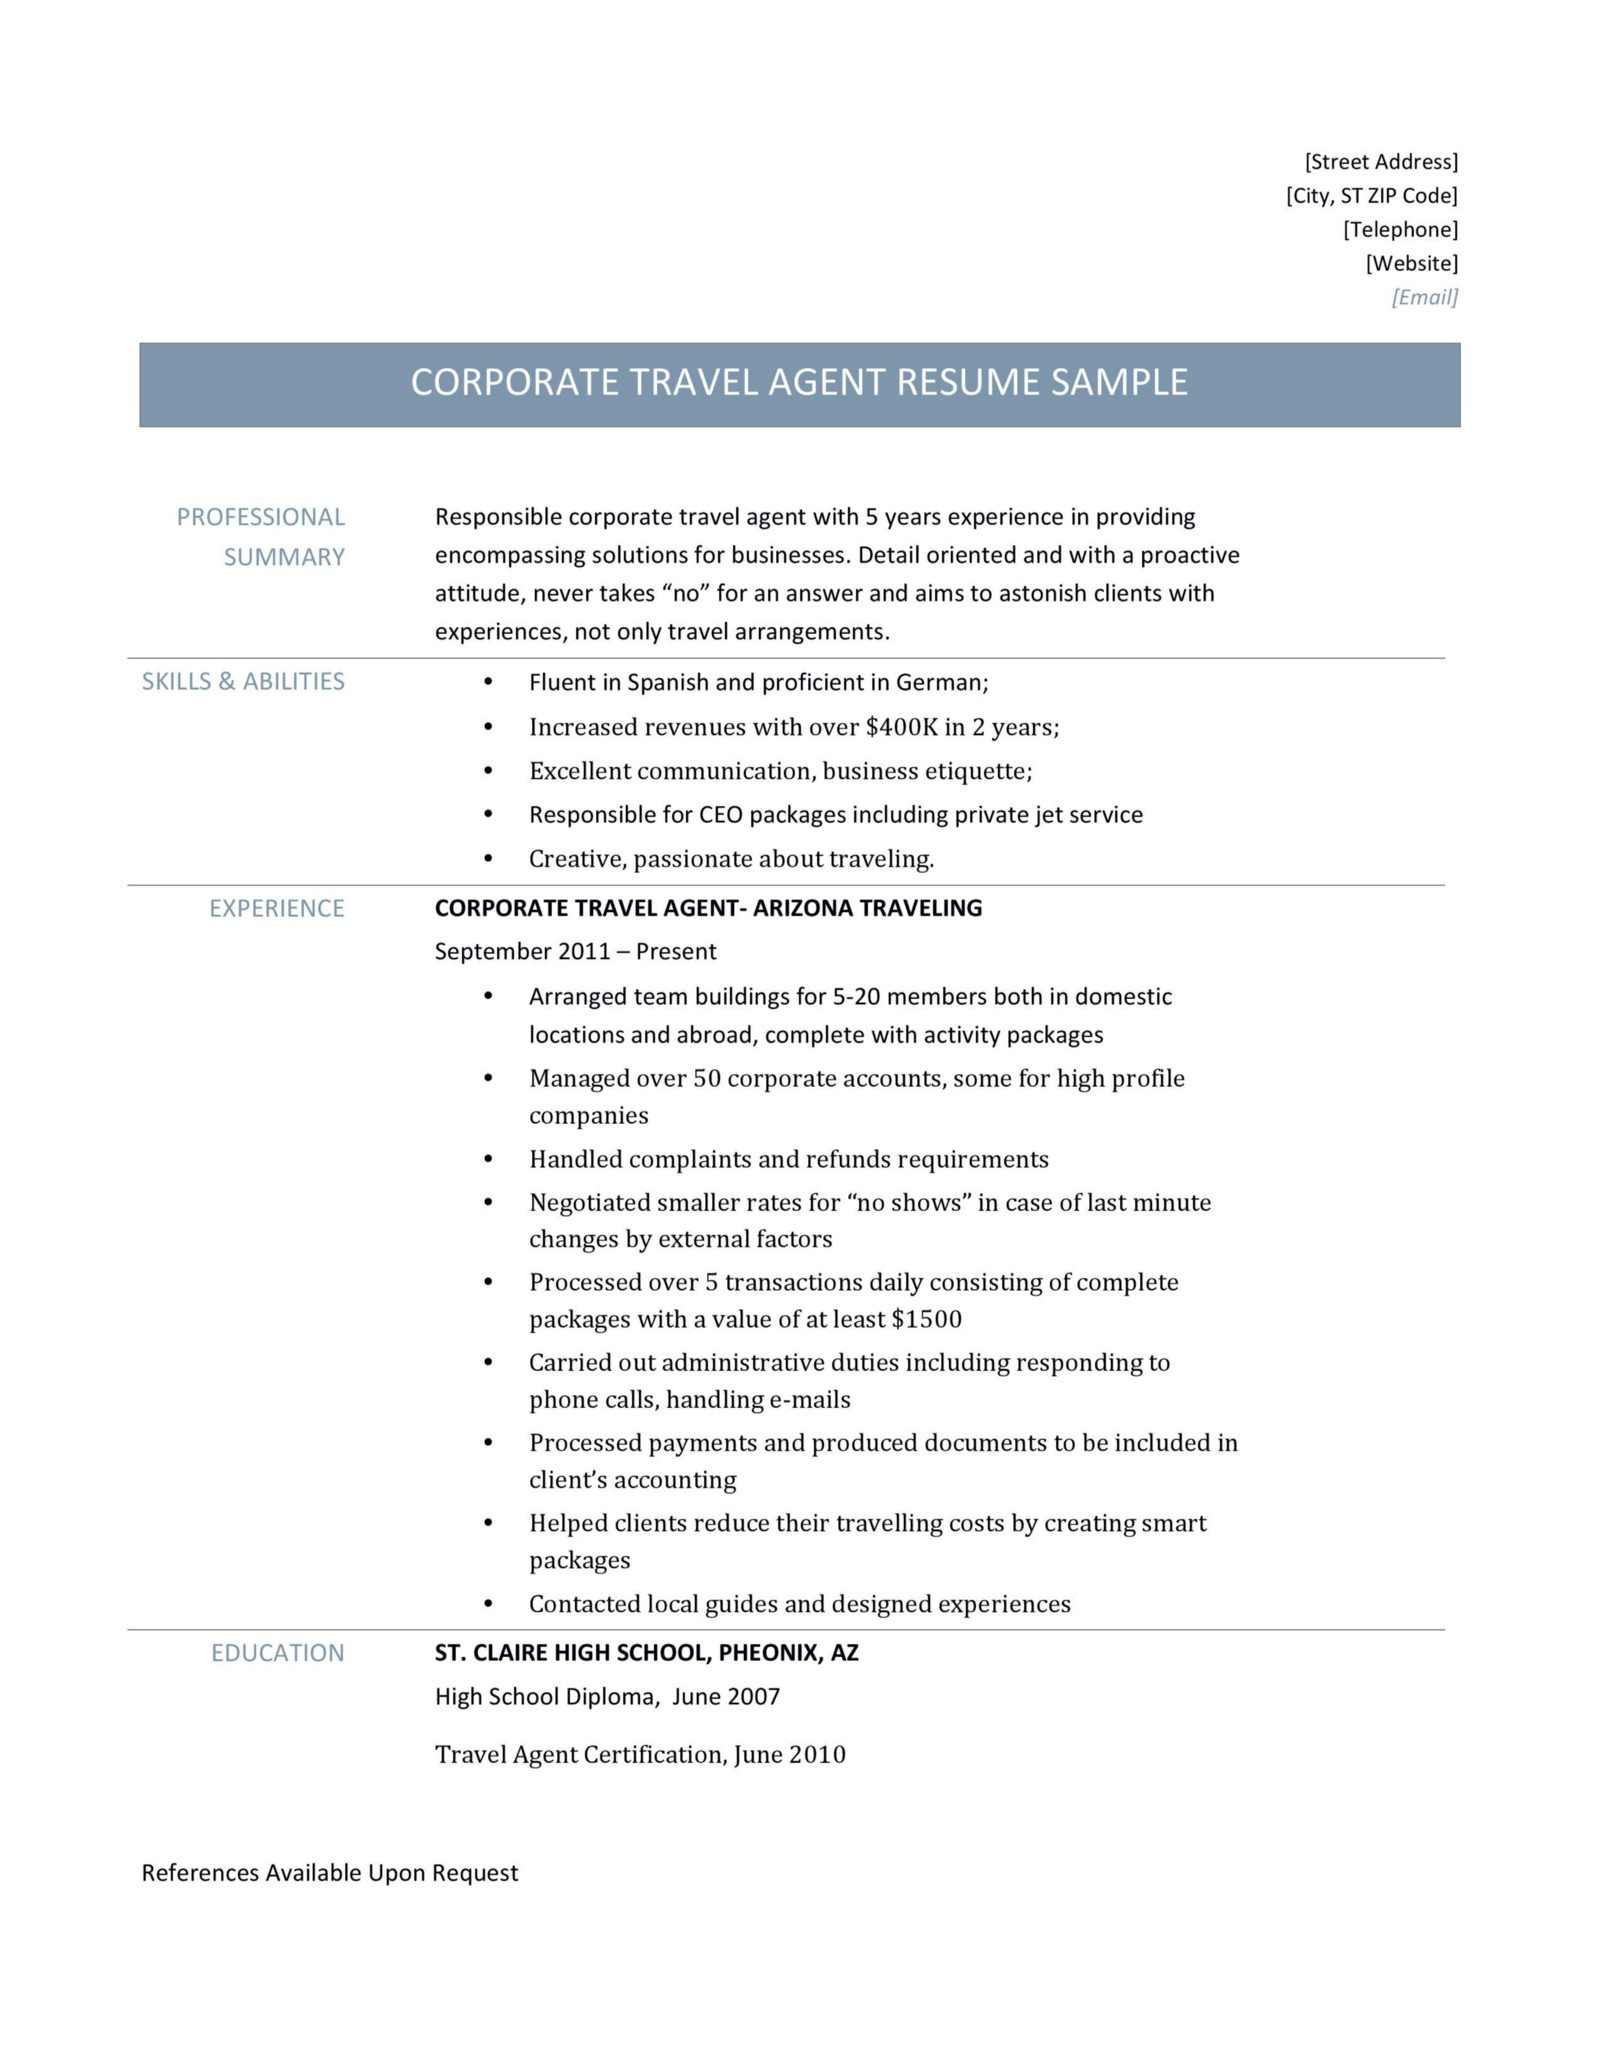 Corporate Travel Agency Resume Template